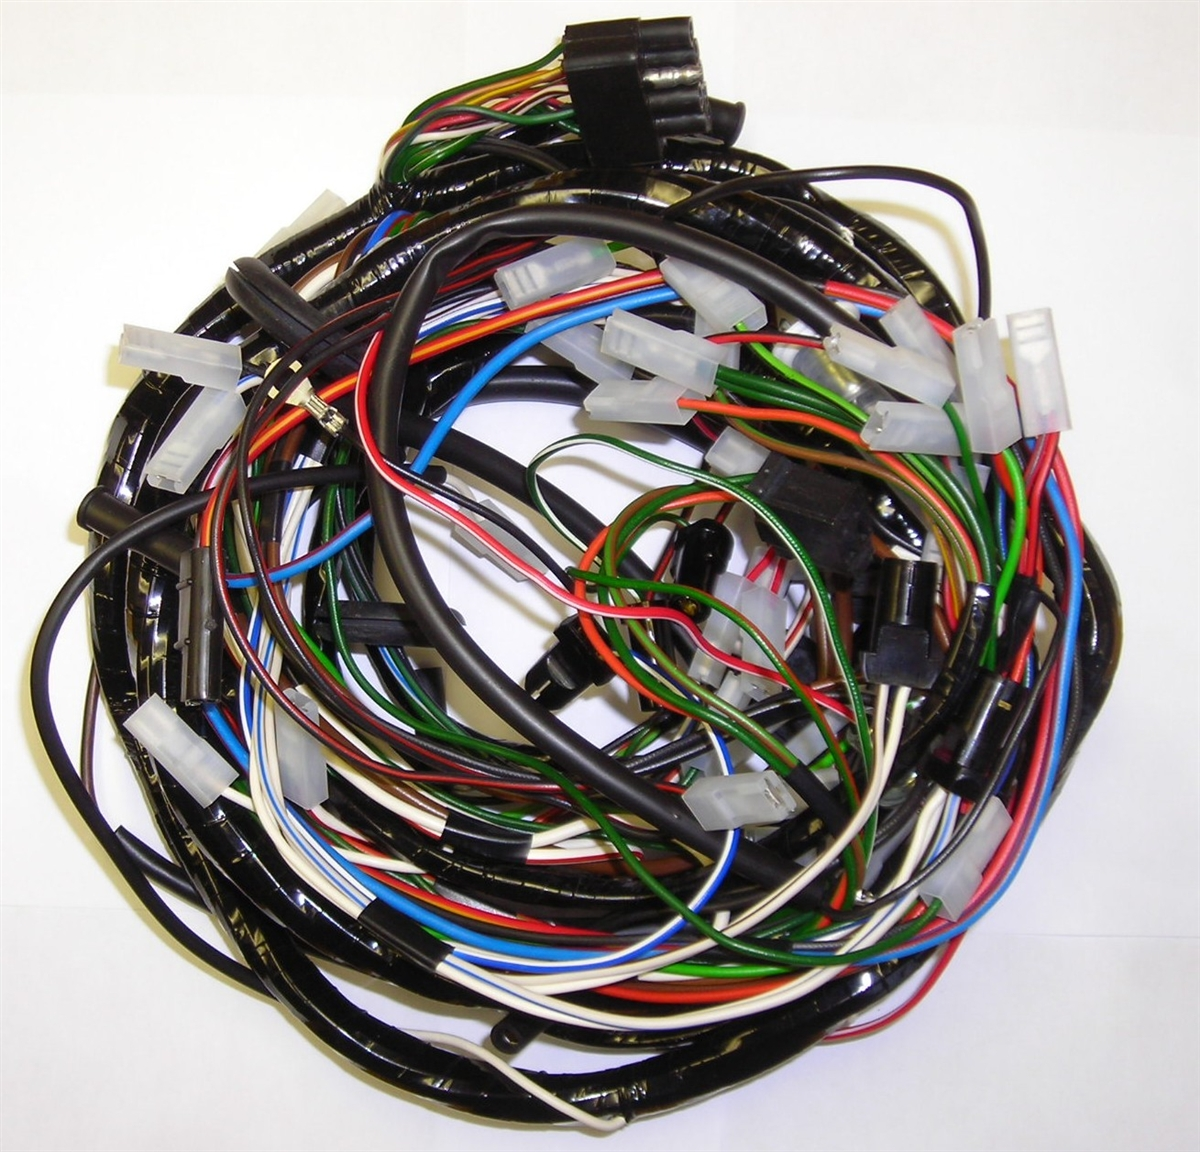 LR306 2?1402646650 rover series 3 main wiring harness Series Speaker Wiring Diagram at cos-gaming.co